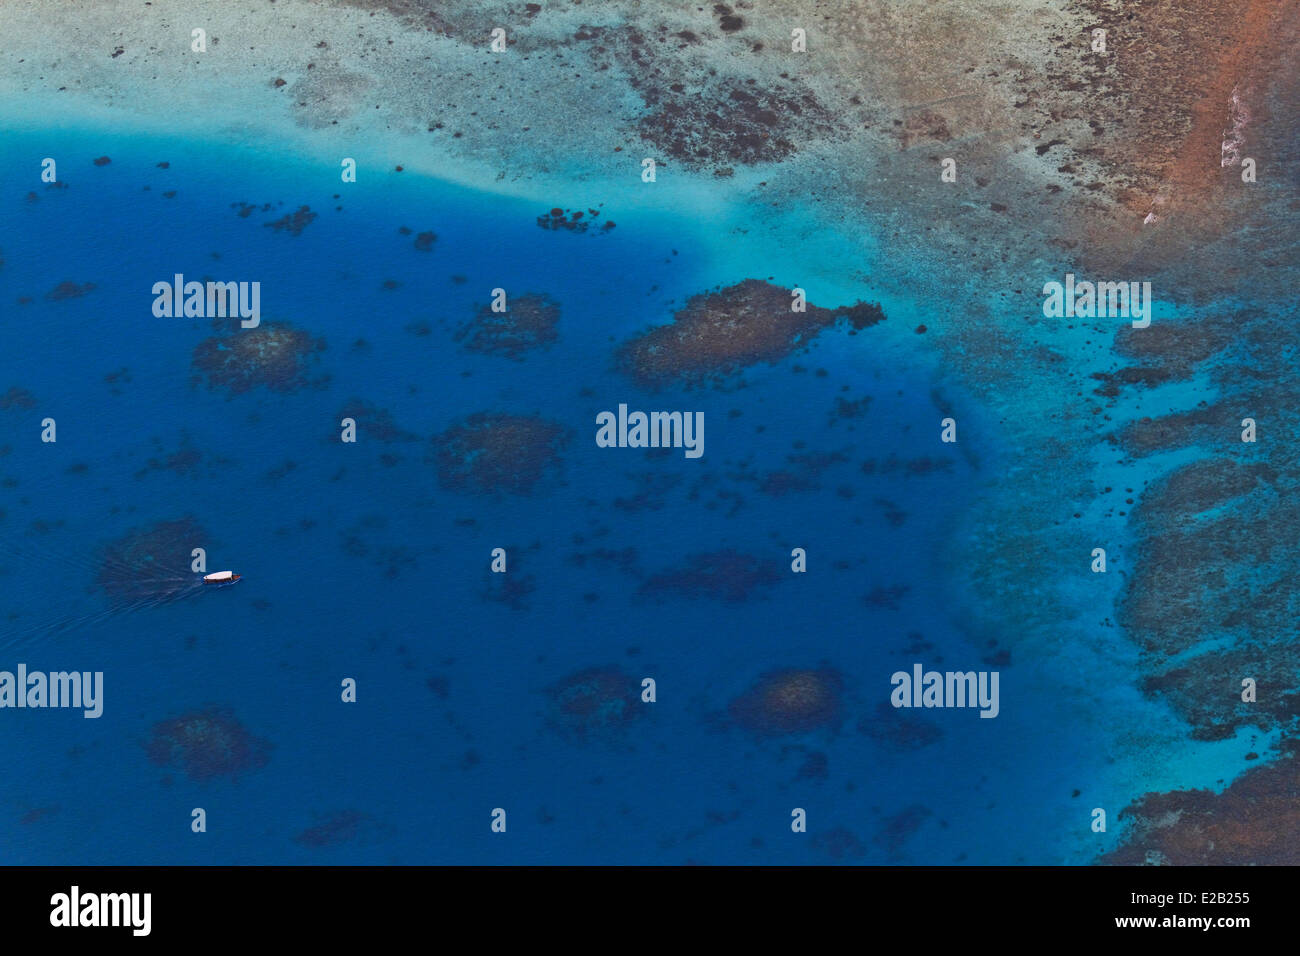 Maldives, atoll (aerial view) - Stock Image